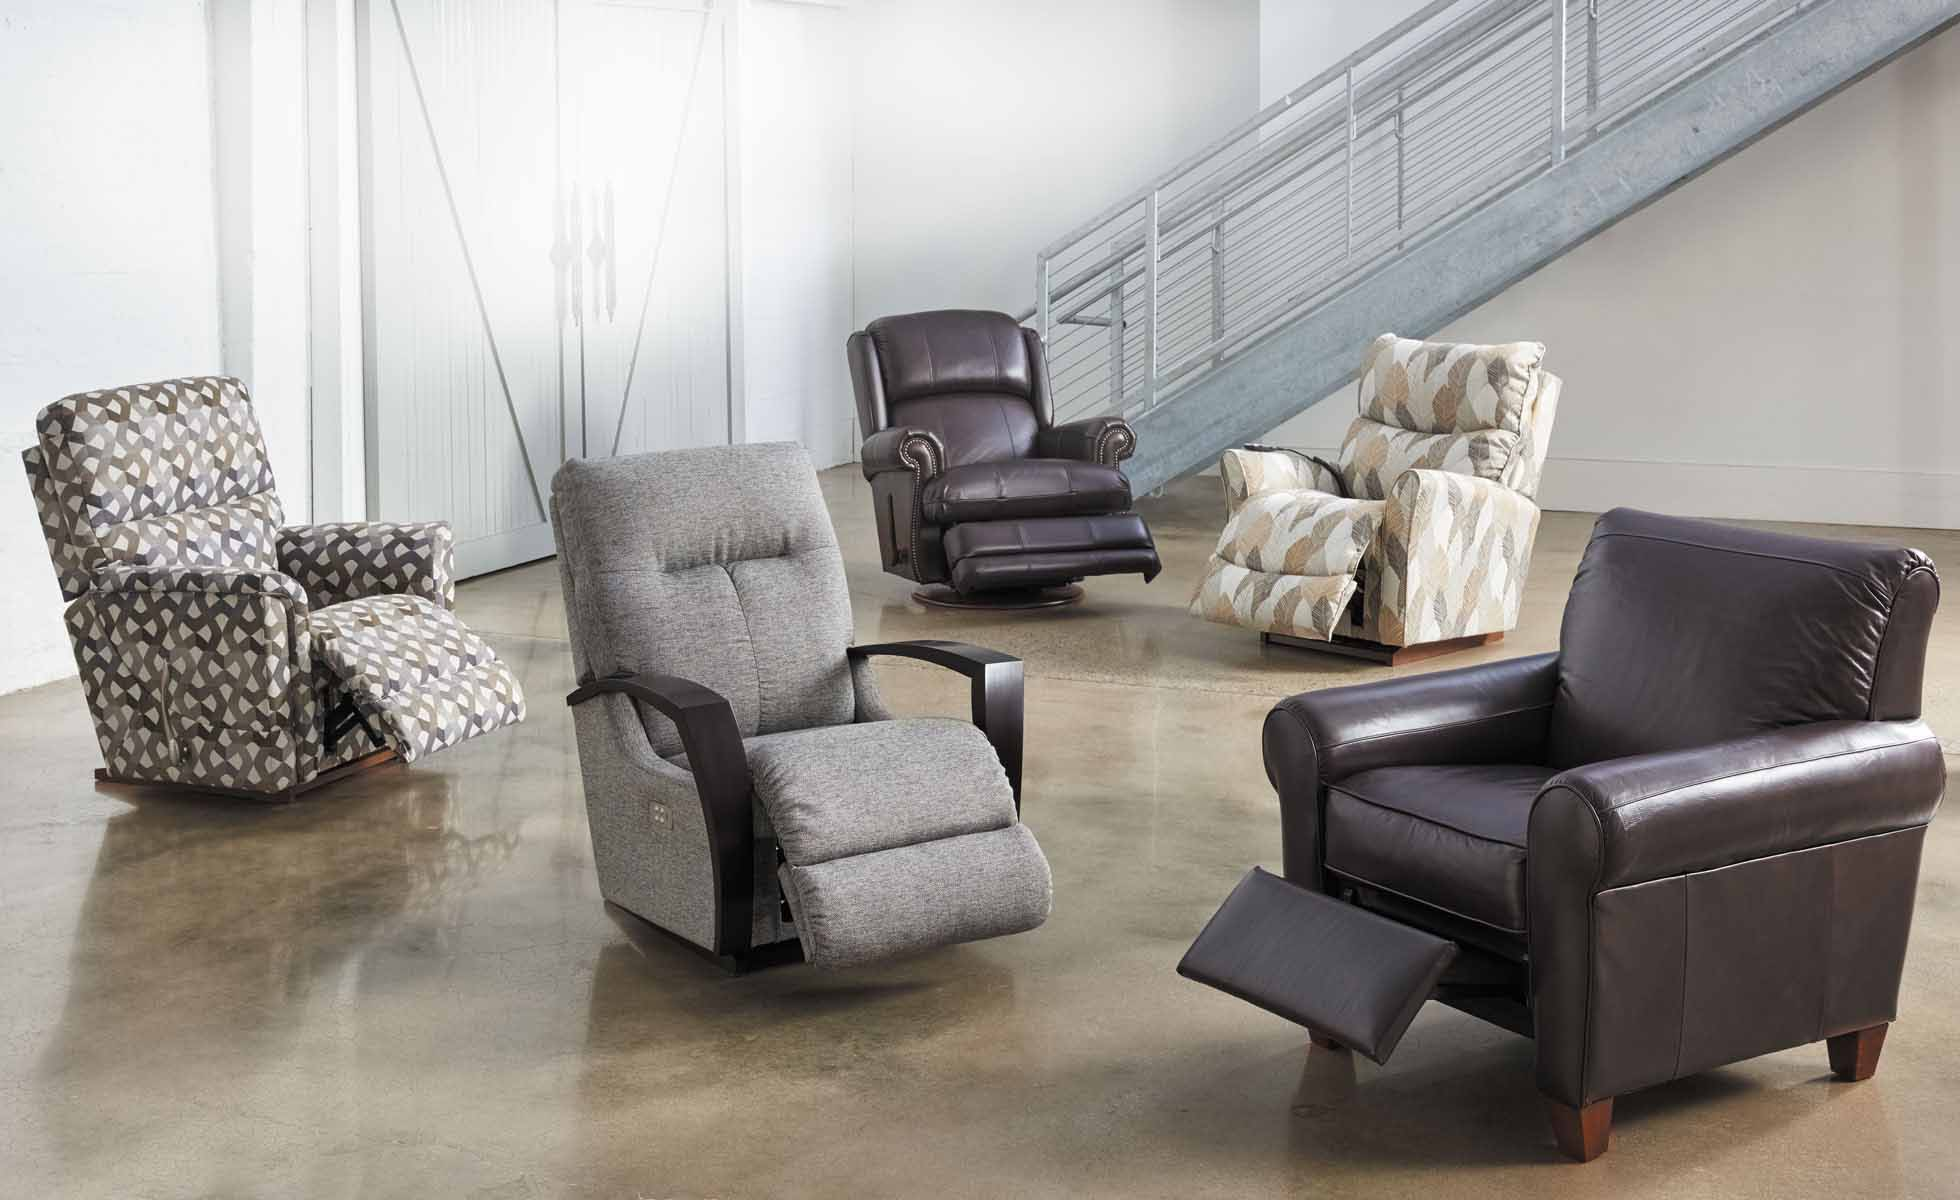 Lounge Chairs - There Is A Huge Choice